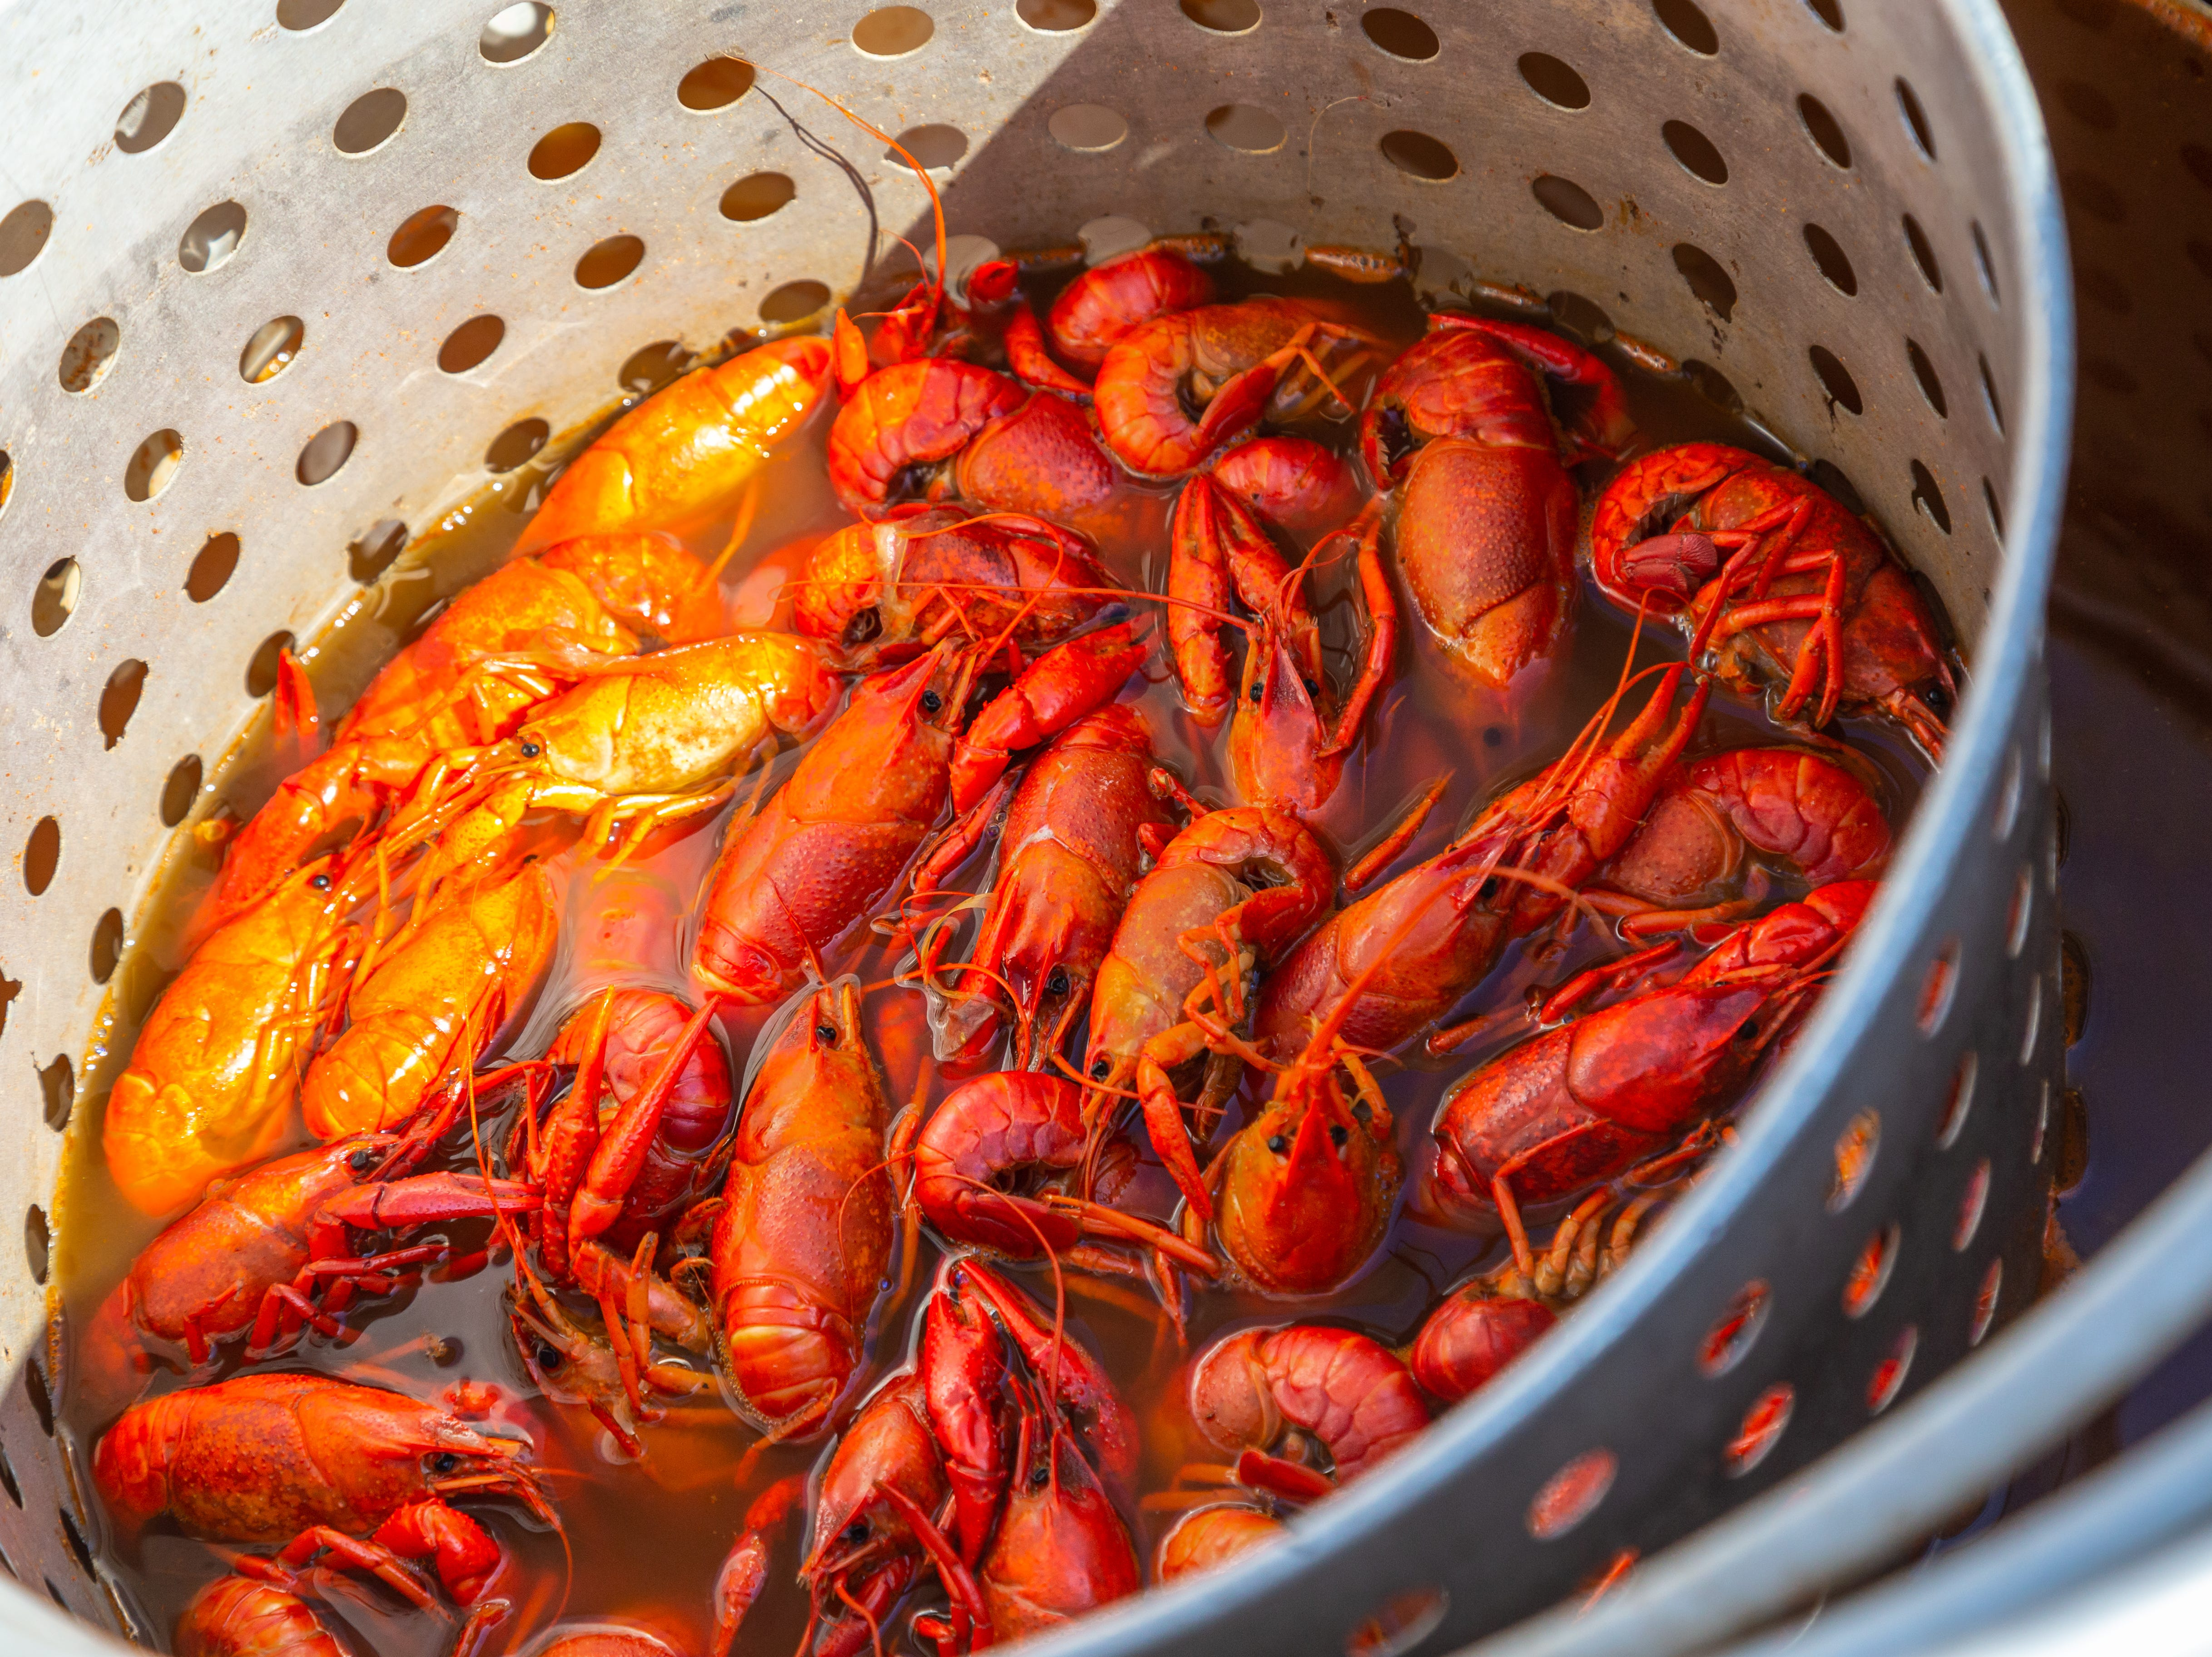 Crawfest 2019 was March 22-23, 2019 at Betty Virginia Park in Shreveport.